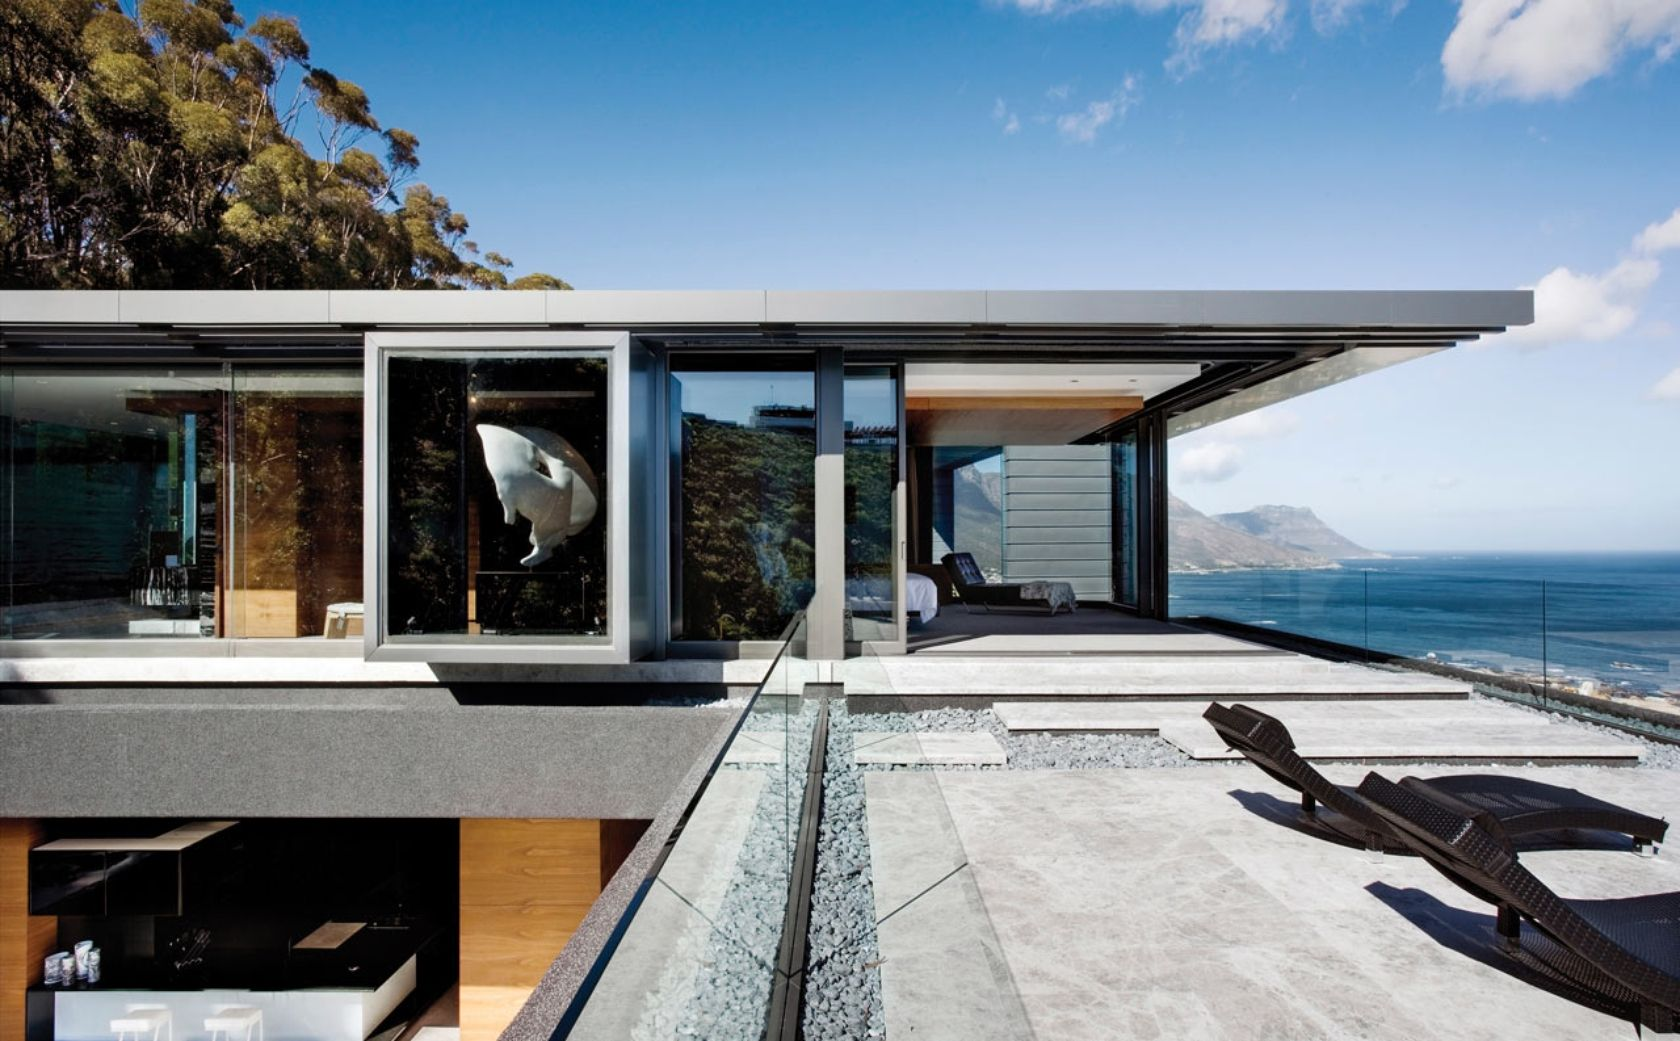 Modern Architecture In South Africa nettleton 198 cape town, south africa | modern architecture